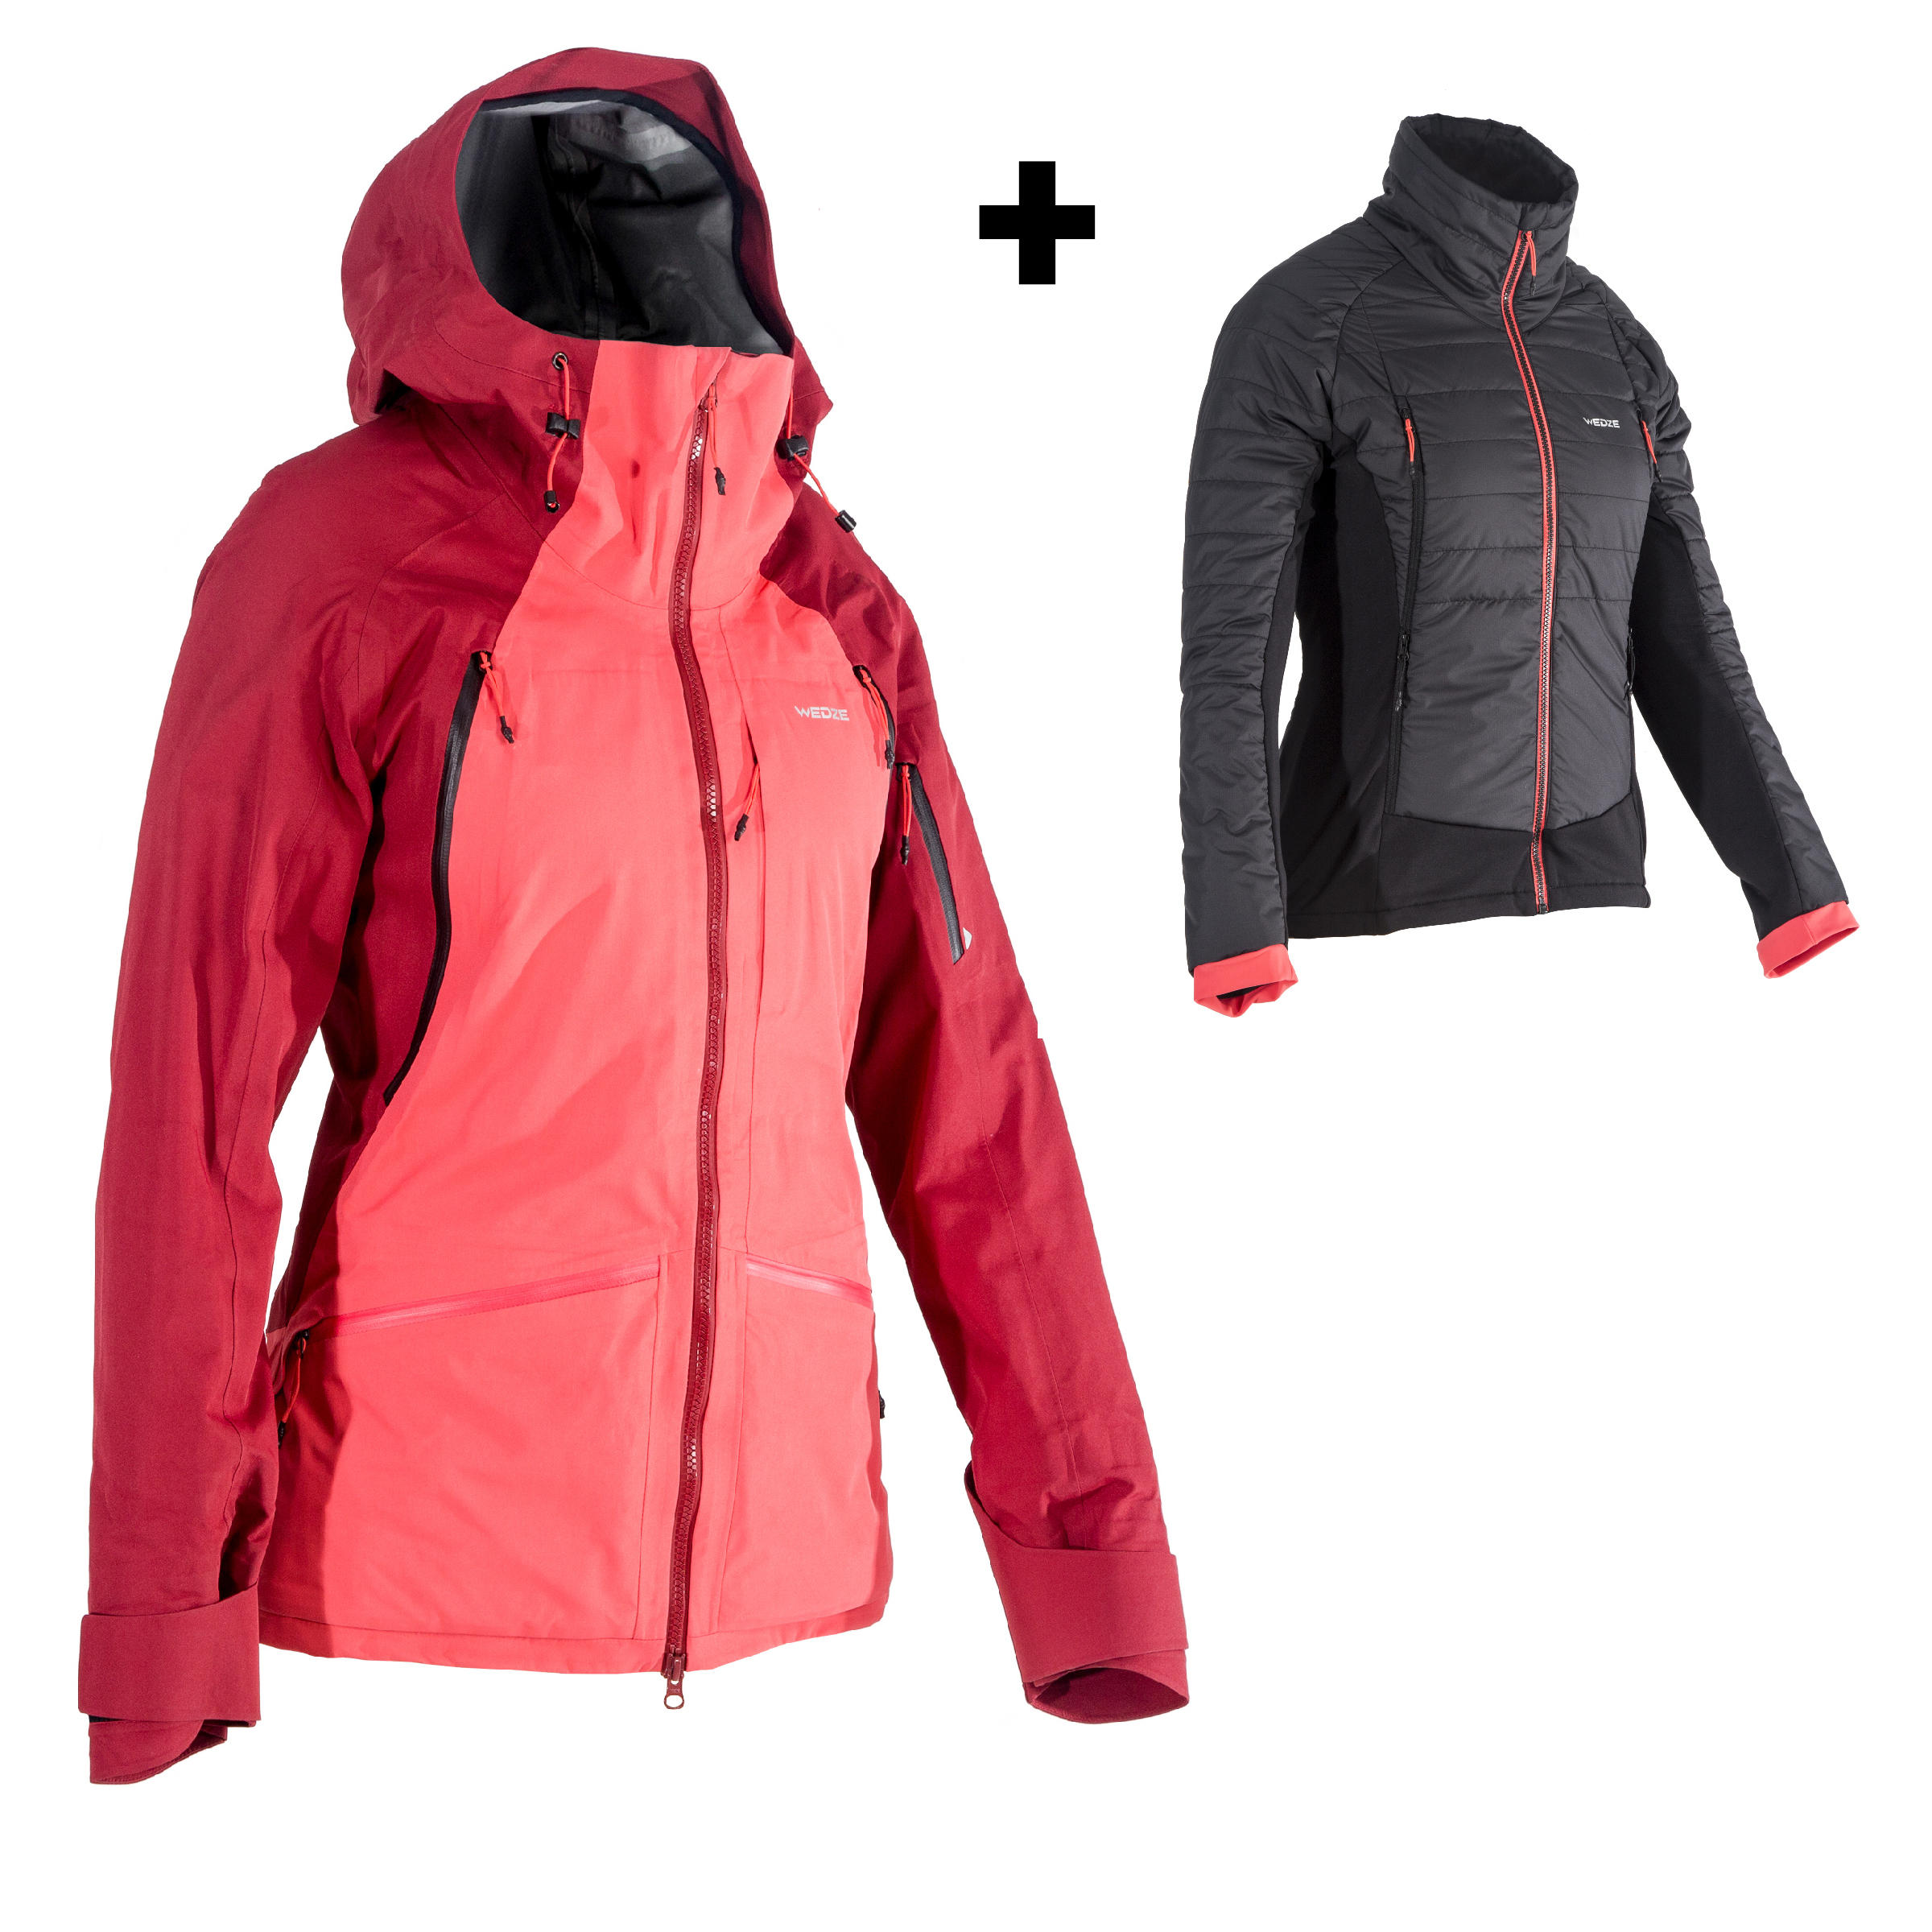 Women's SFR 900 Freeride Ski Jacket Burgundy Pink